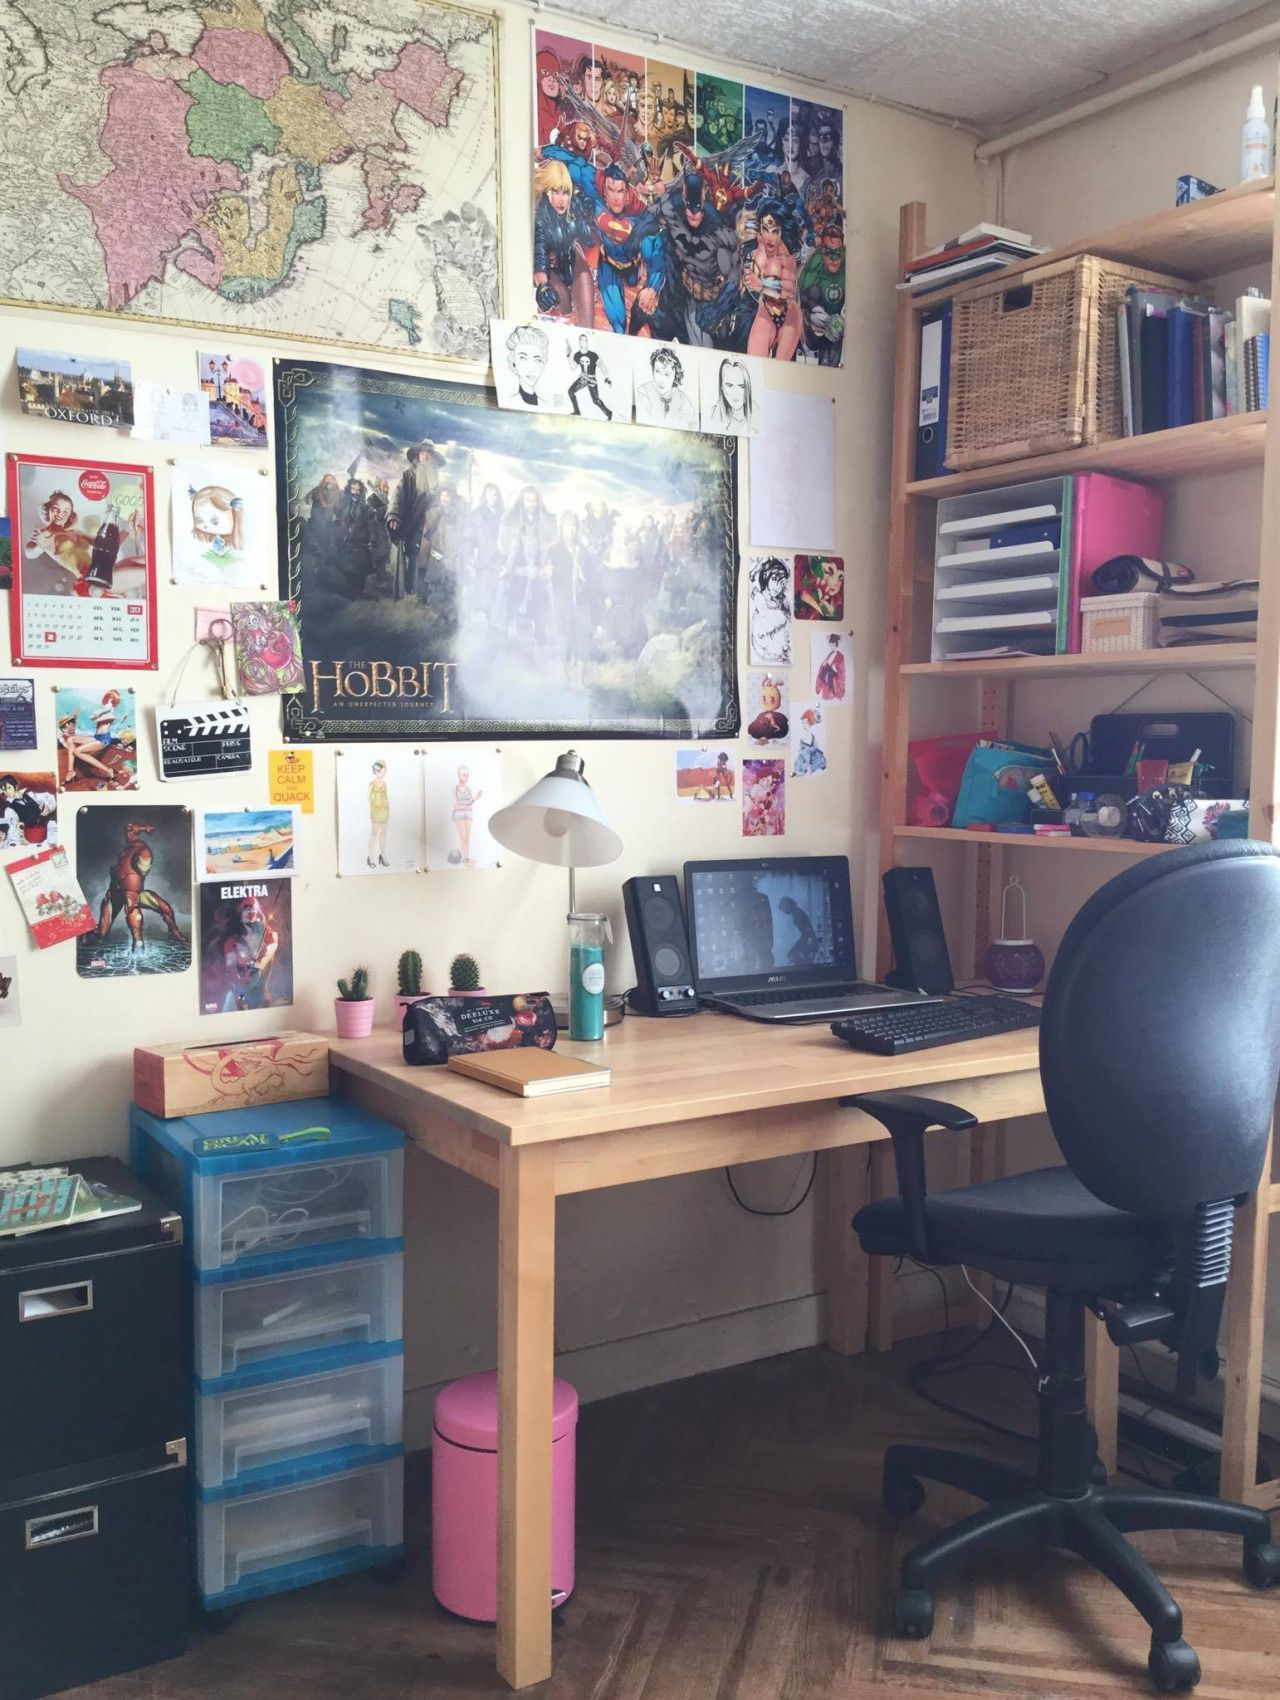 Pin by Cassidy Rae on Room Goals + Decor   Pinterest   Room goals, Study  areas and Desk